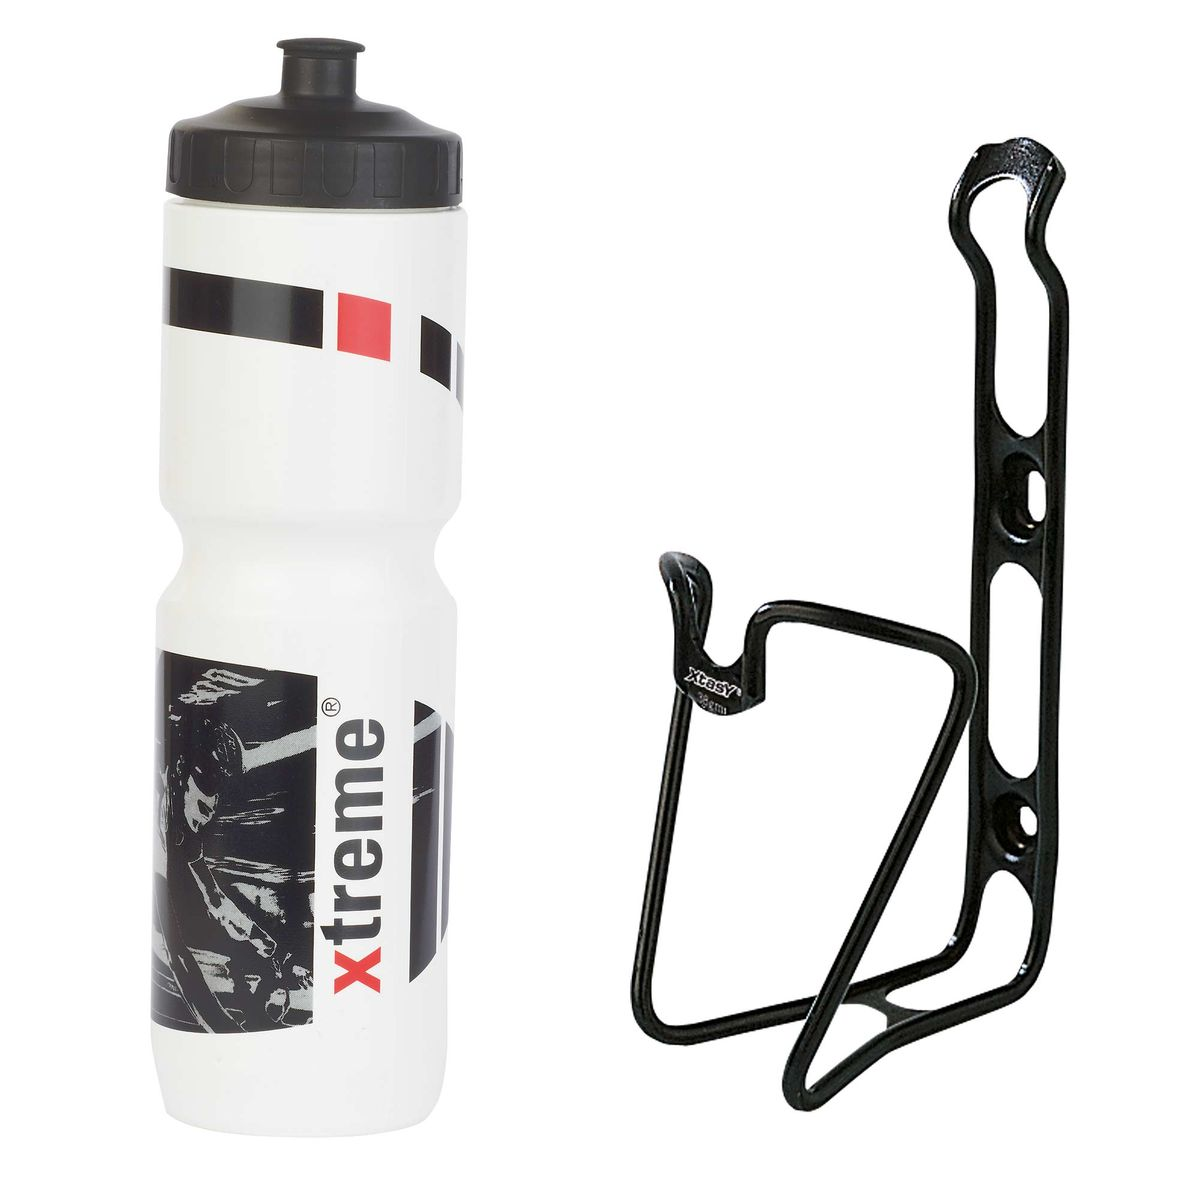 Hobby 1 l bottle + ergotec bottle cage set